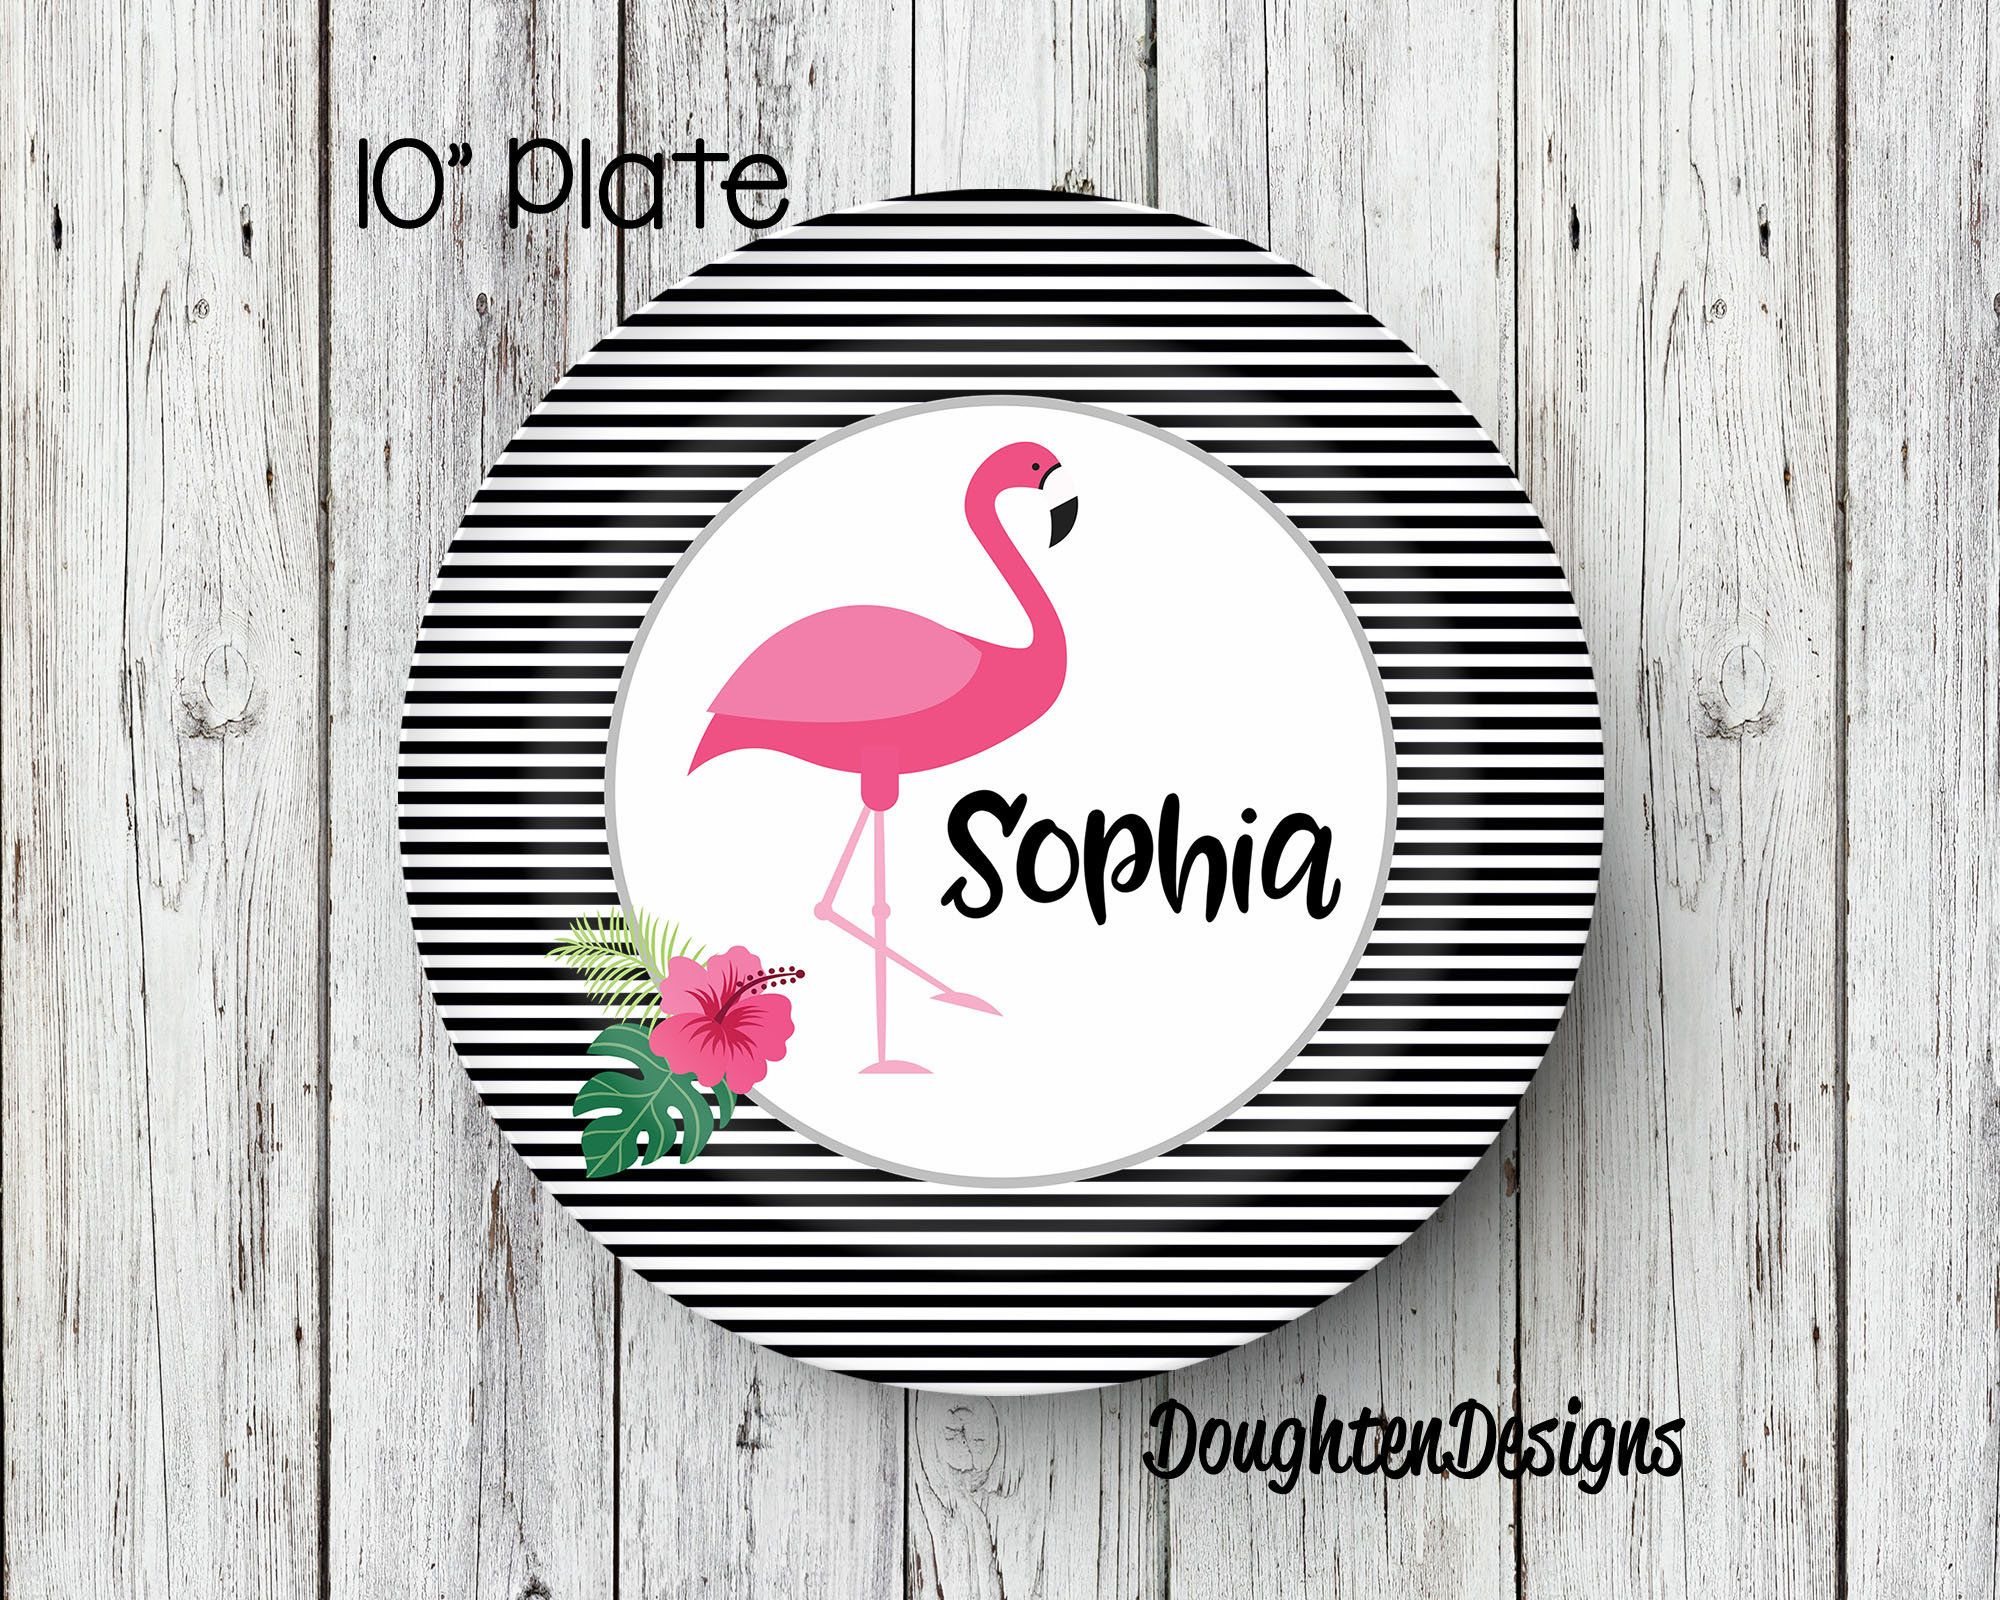 Flamingo Plate Personalized Name Plate Personalized Melamine Plate Kids Dinner Plate Toddler  sc 1 st  Pinterest & Flamingo Plate Personalized Name Plate Personalized Melamine Plate ...